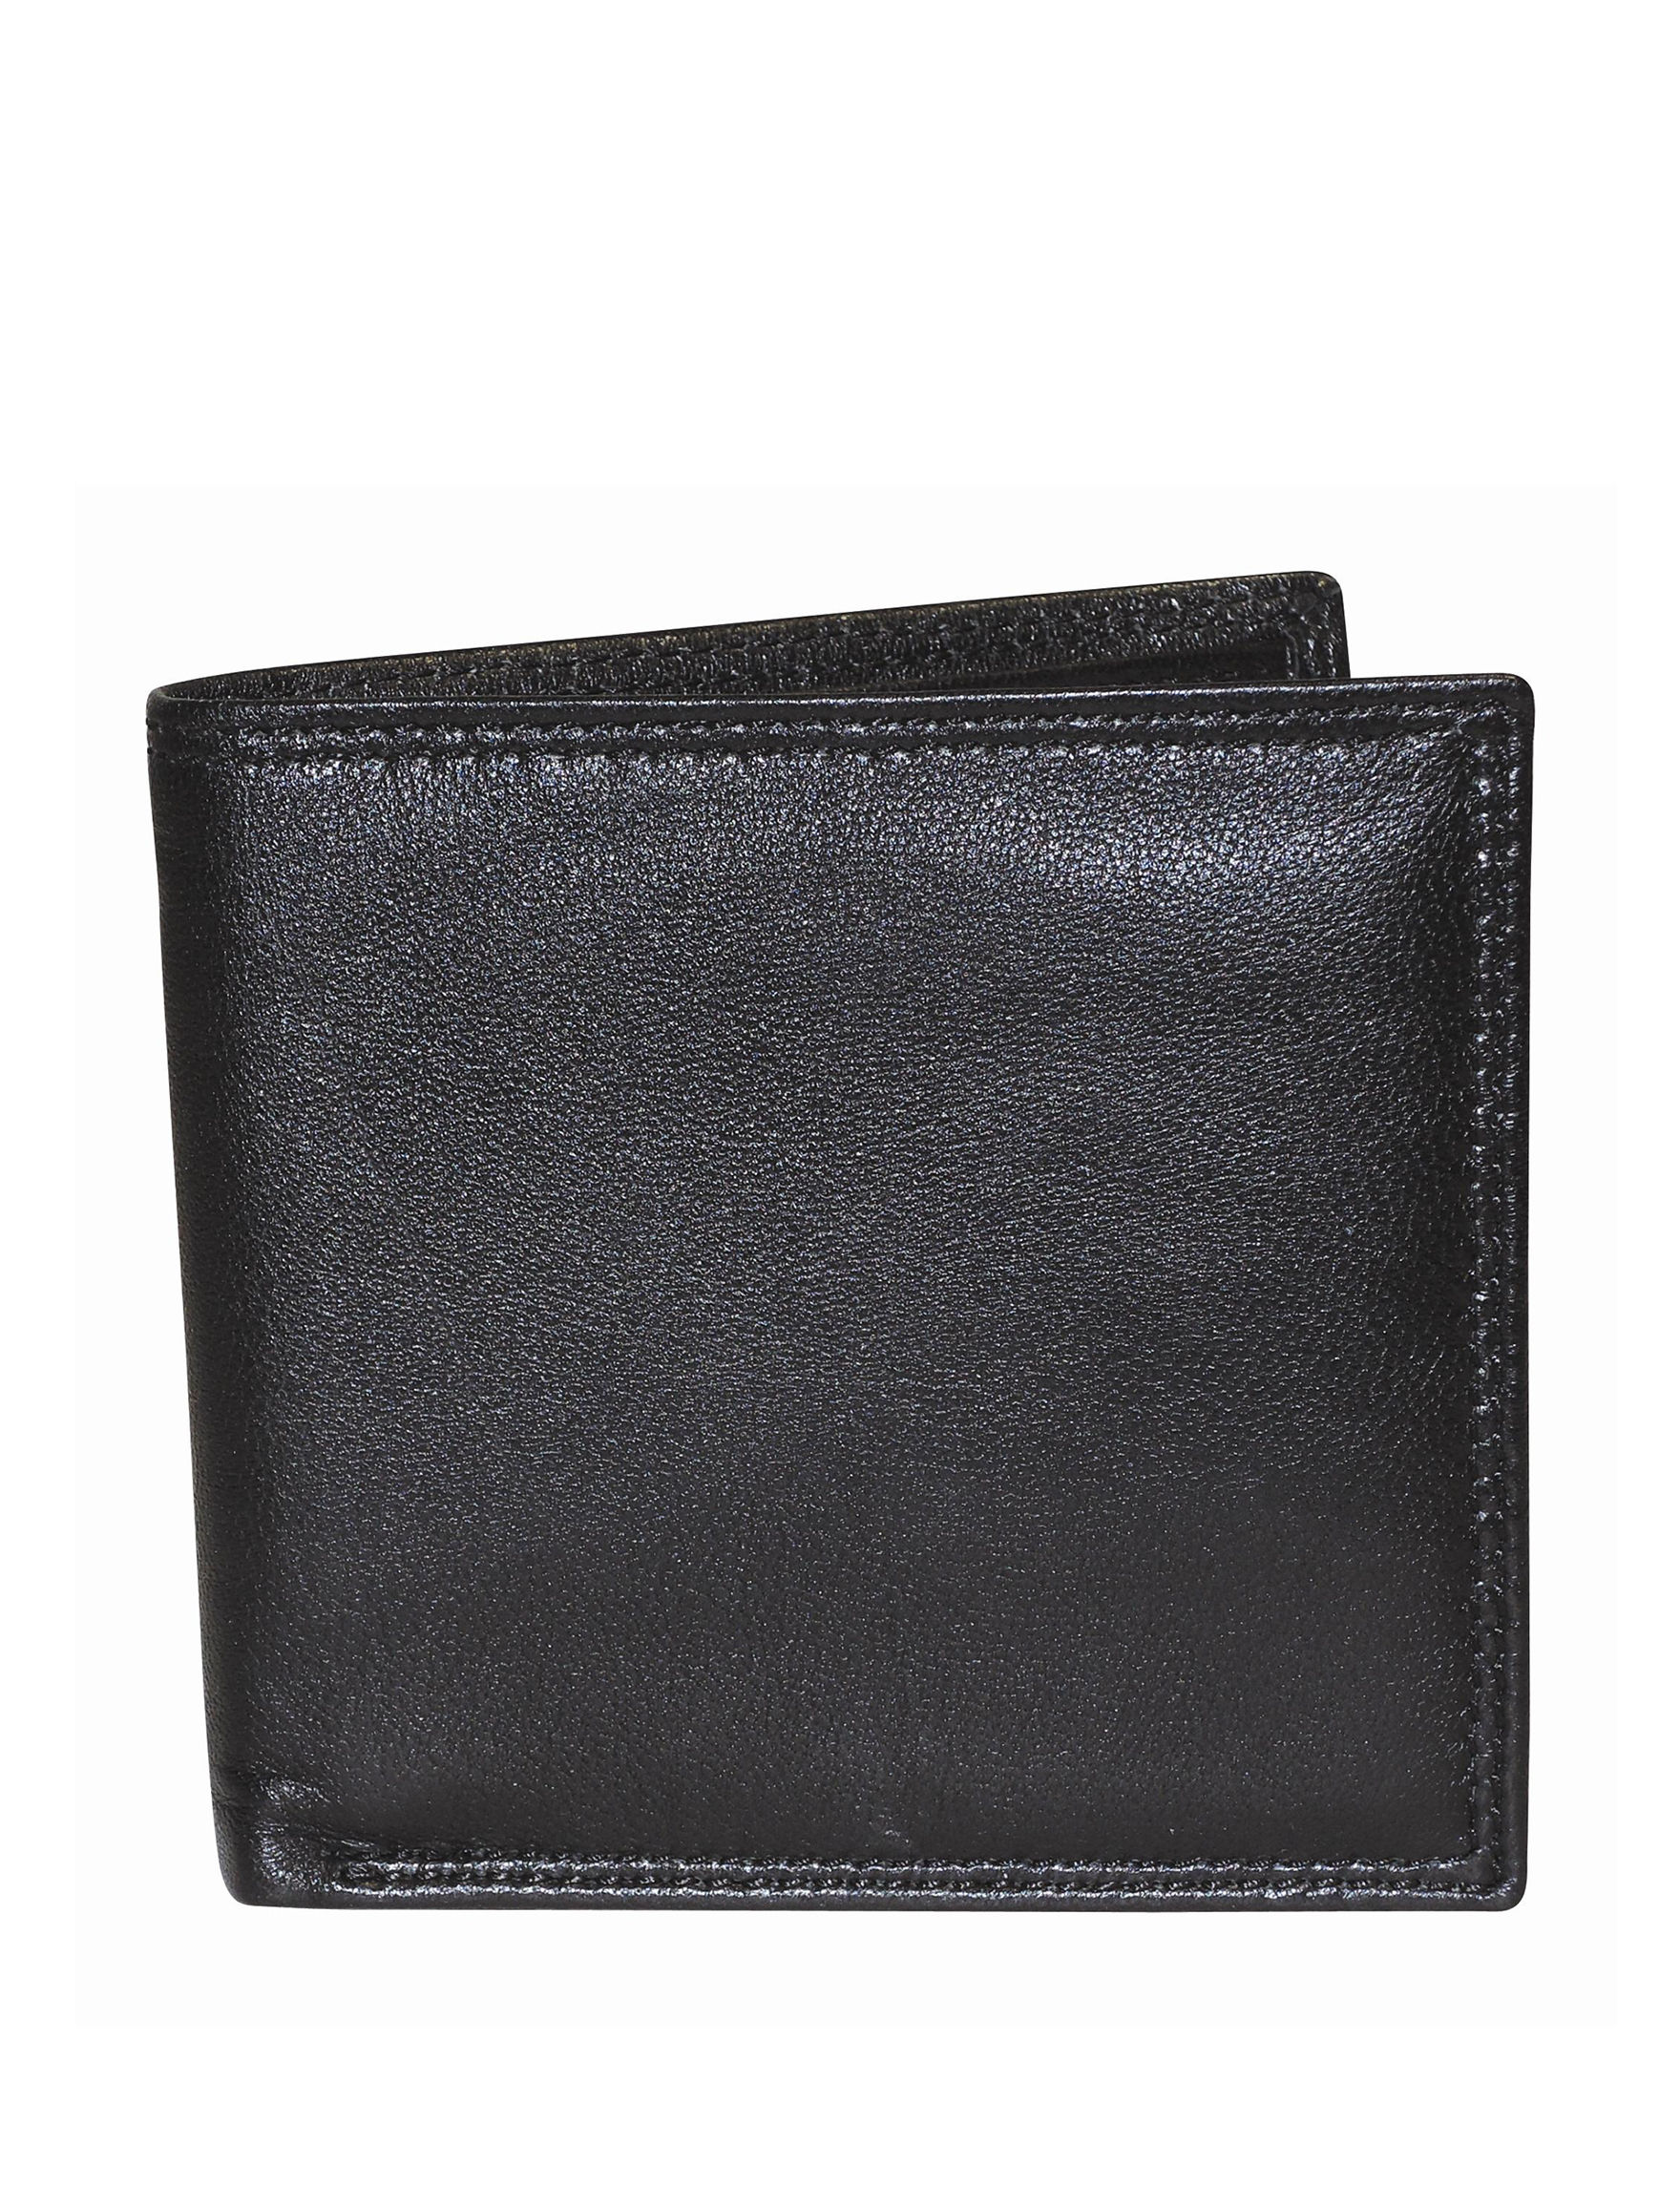 Buxton Black Bi-fold Wallets